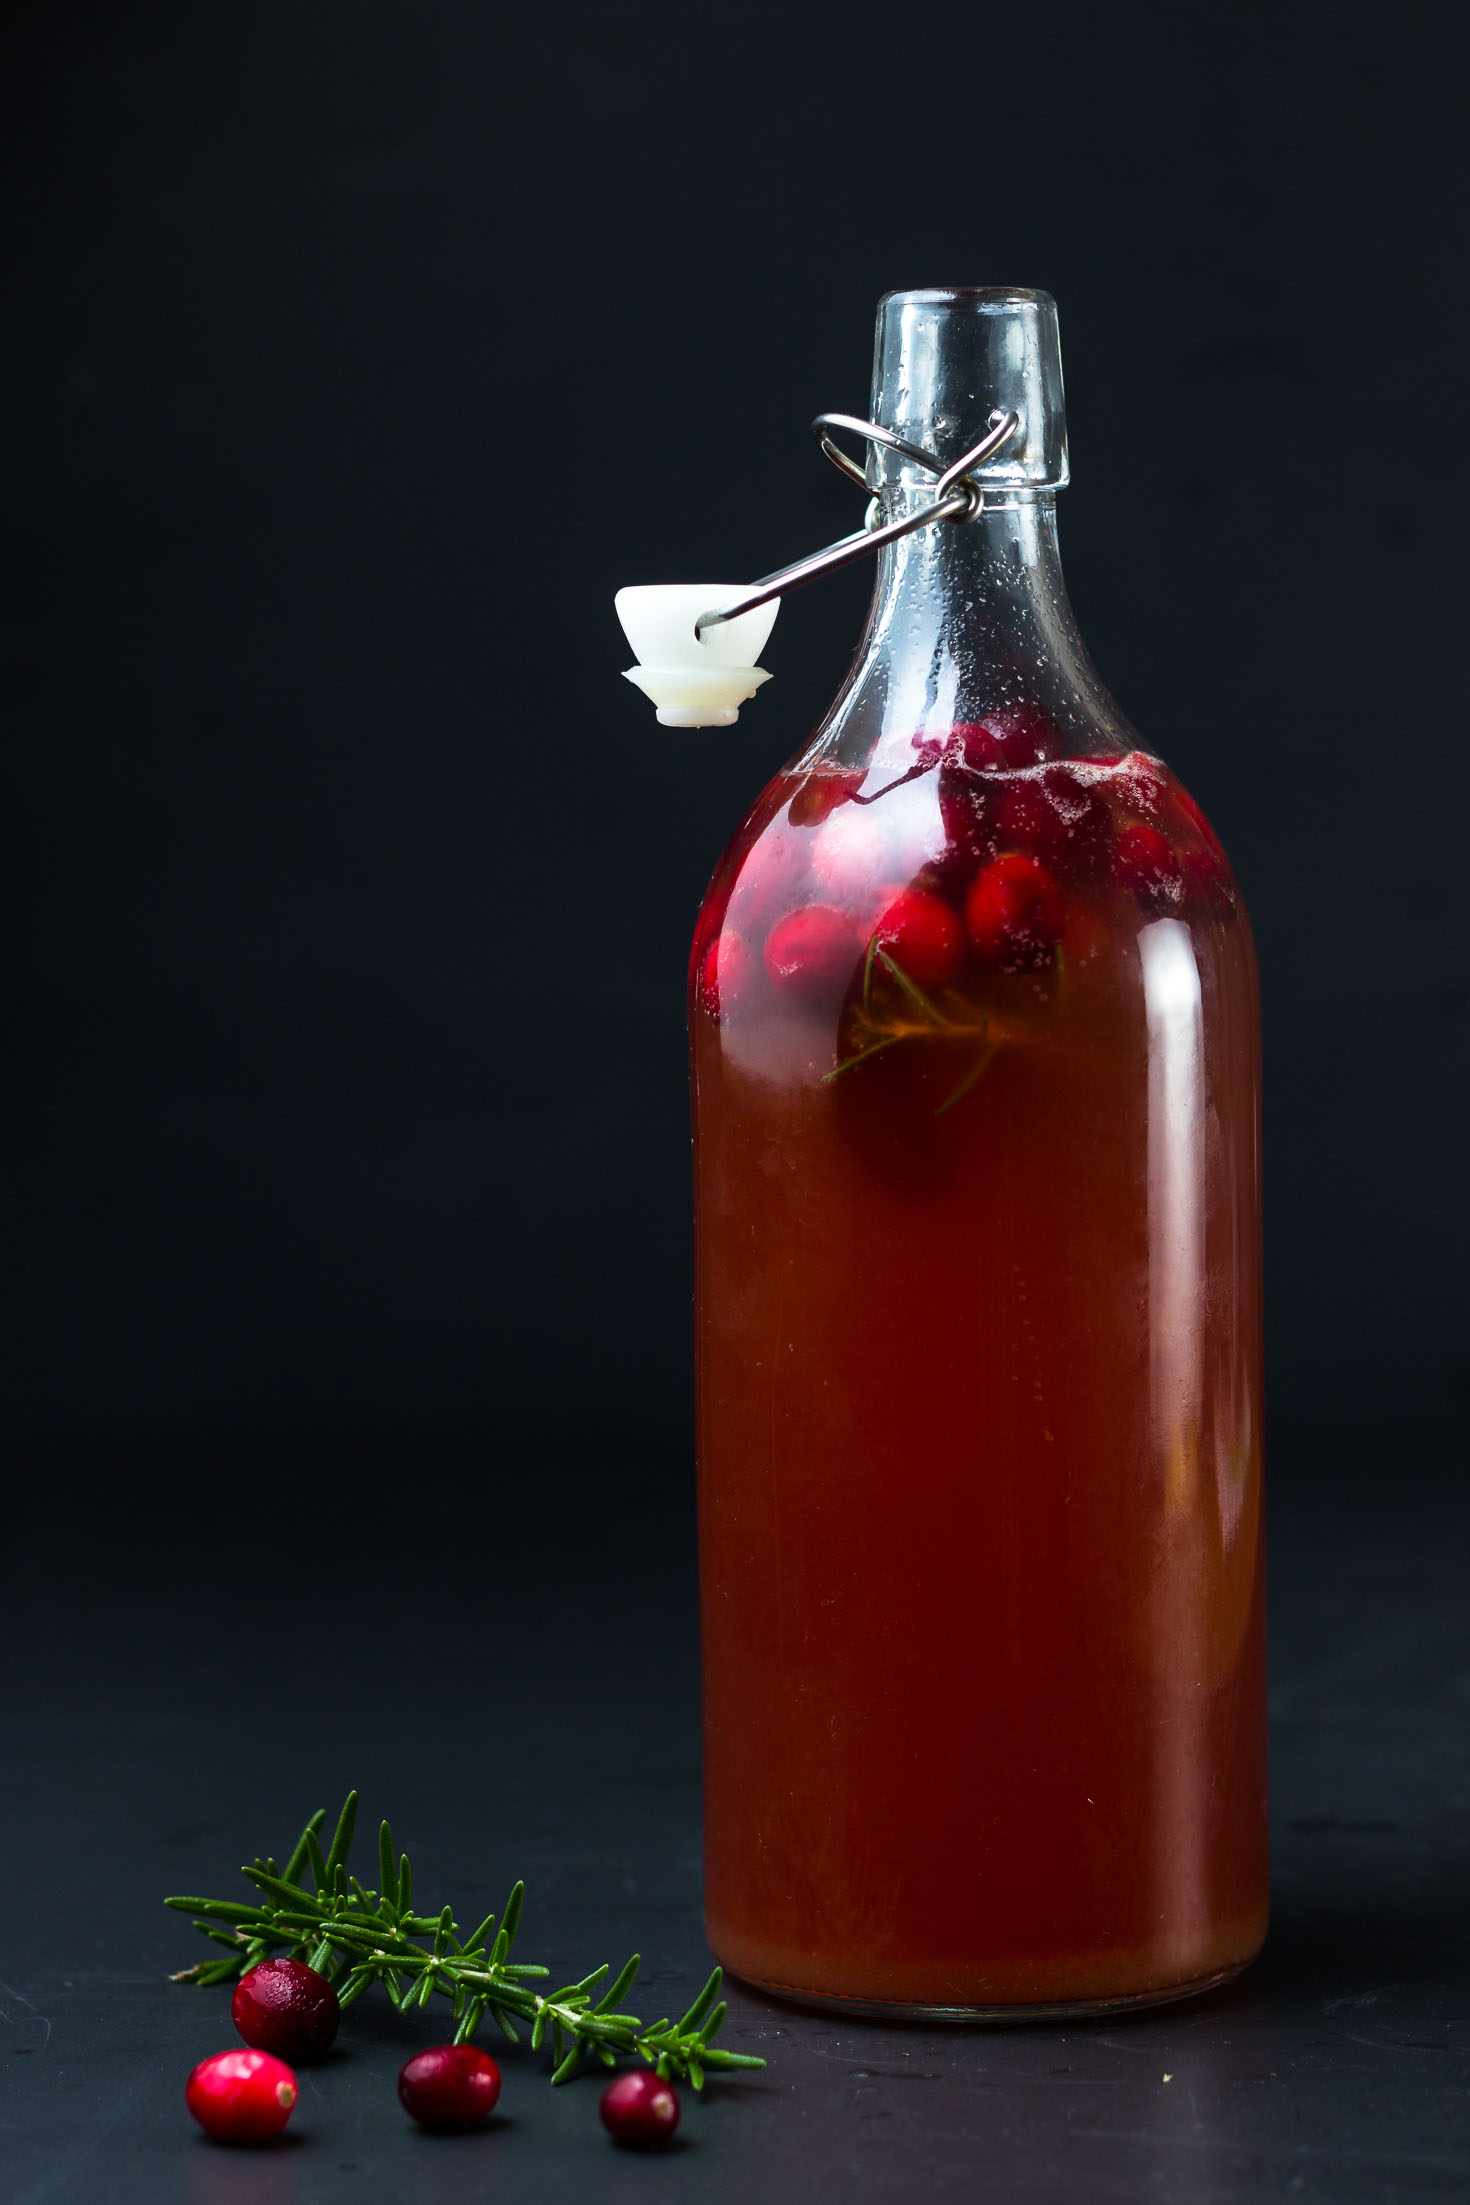 Sparkling Cranberry Rosemary Kefir Punch-in a bottle